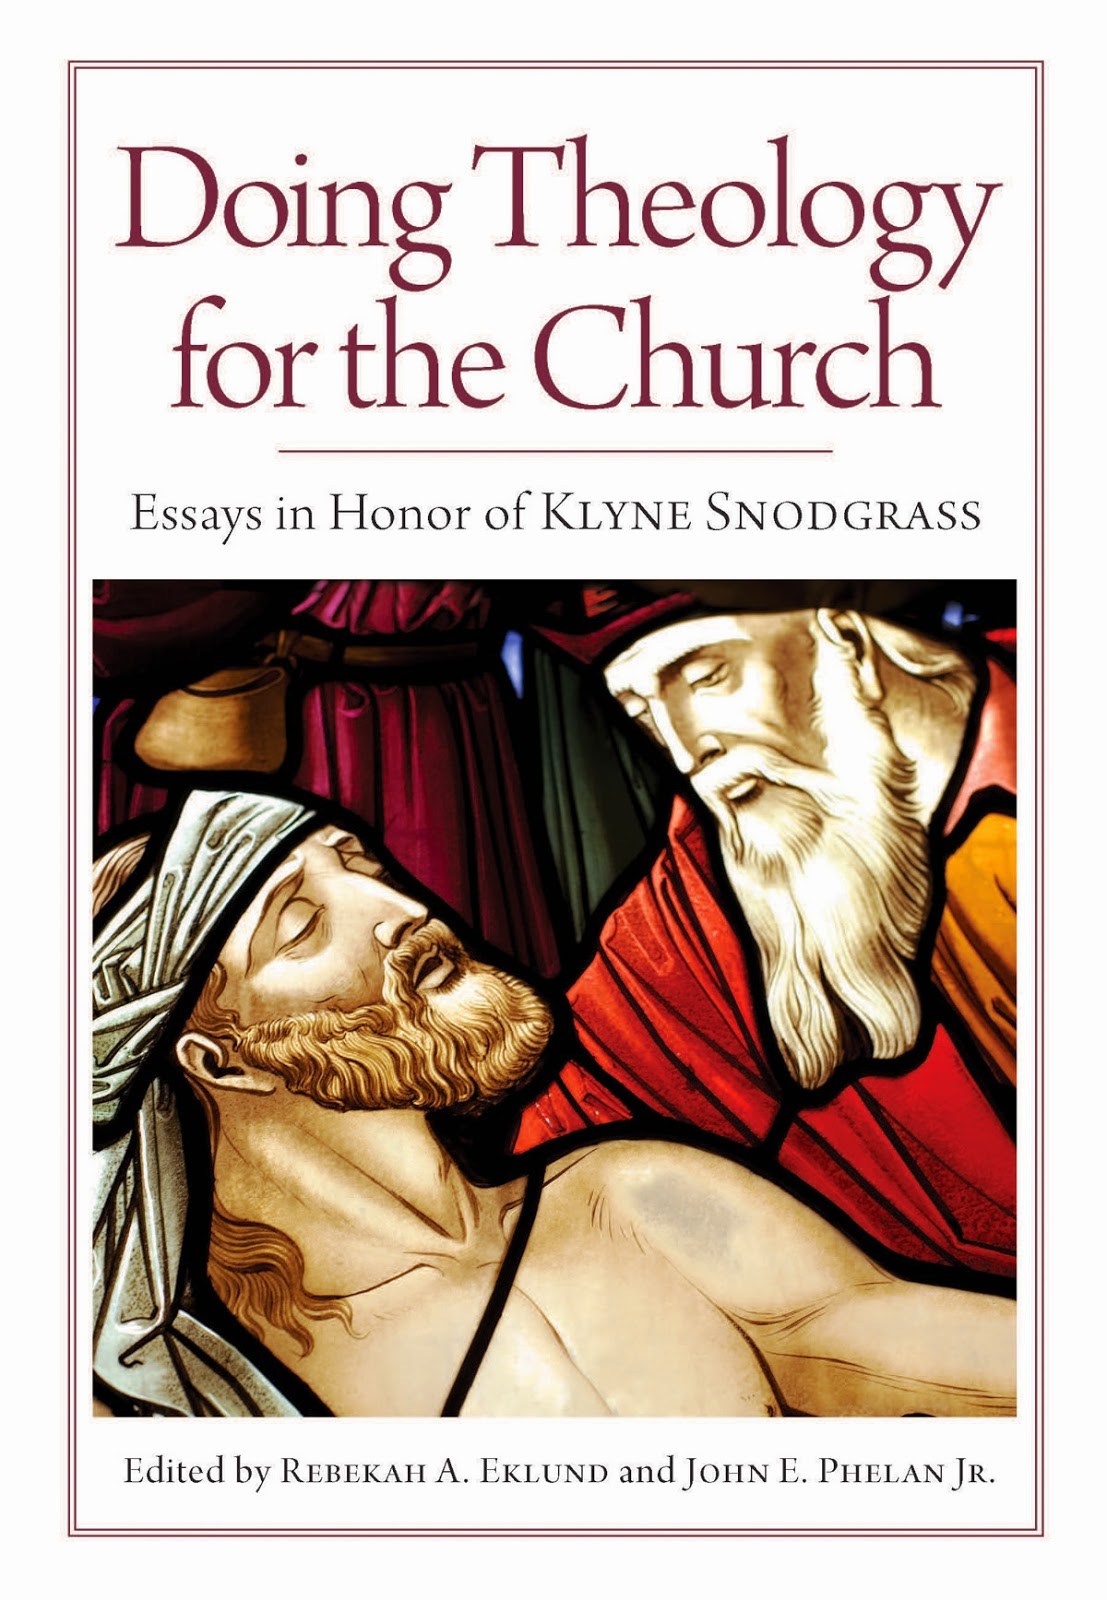 paul redux the gospel of jesus christ in the greco r world a seminary dr klyne snodgrass the paul w brandel professor of new testament studies the collection of essays celebrates klyne s 70th birthday